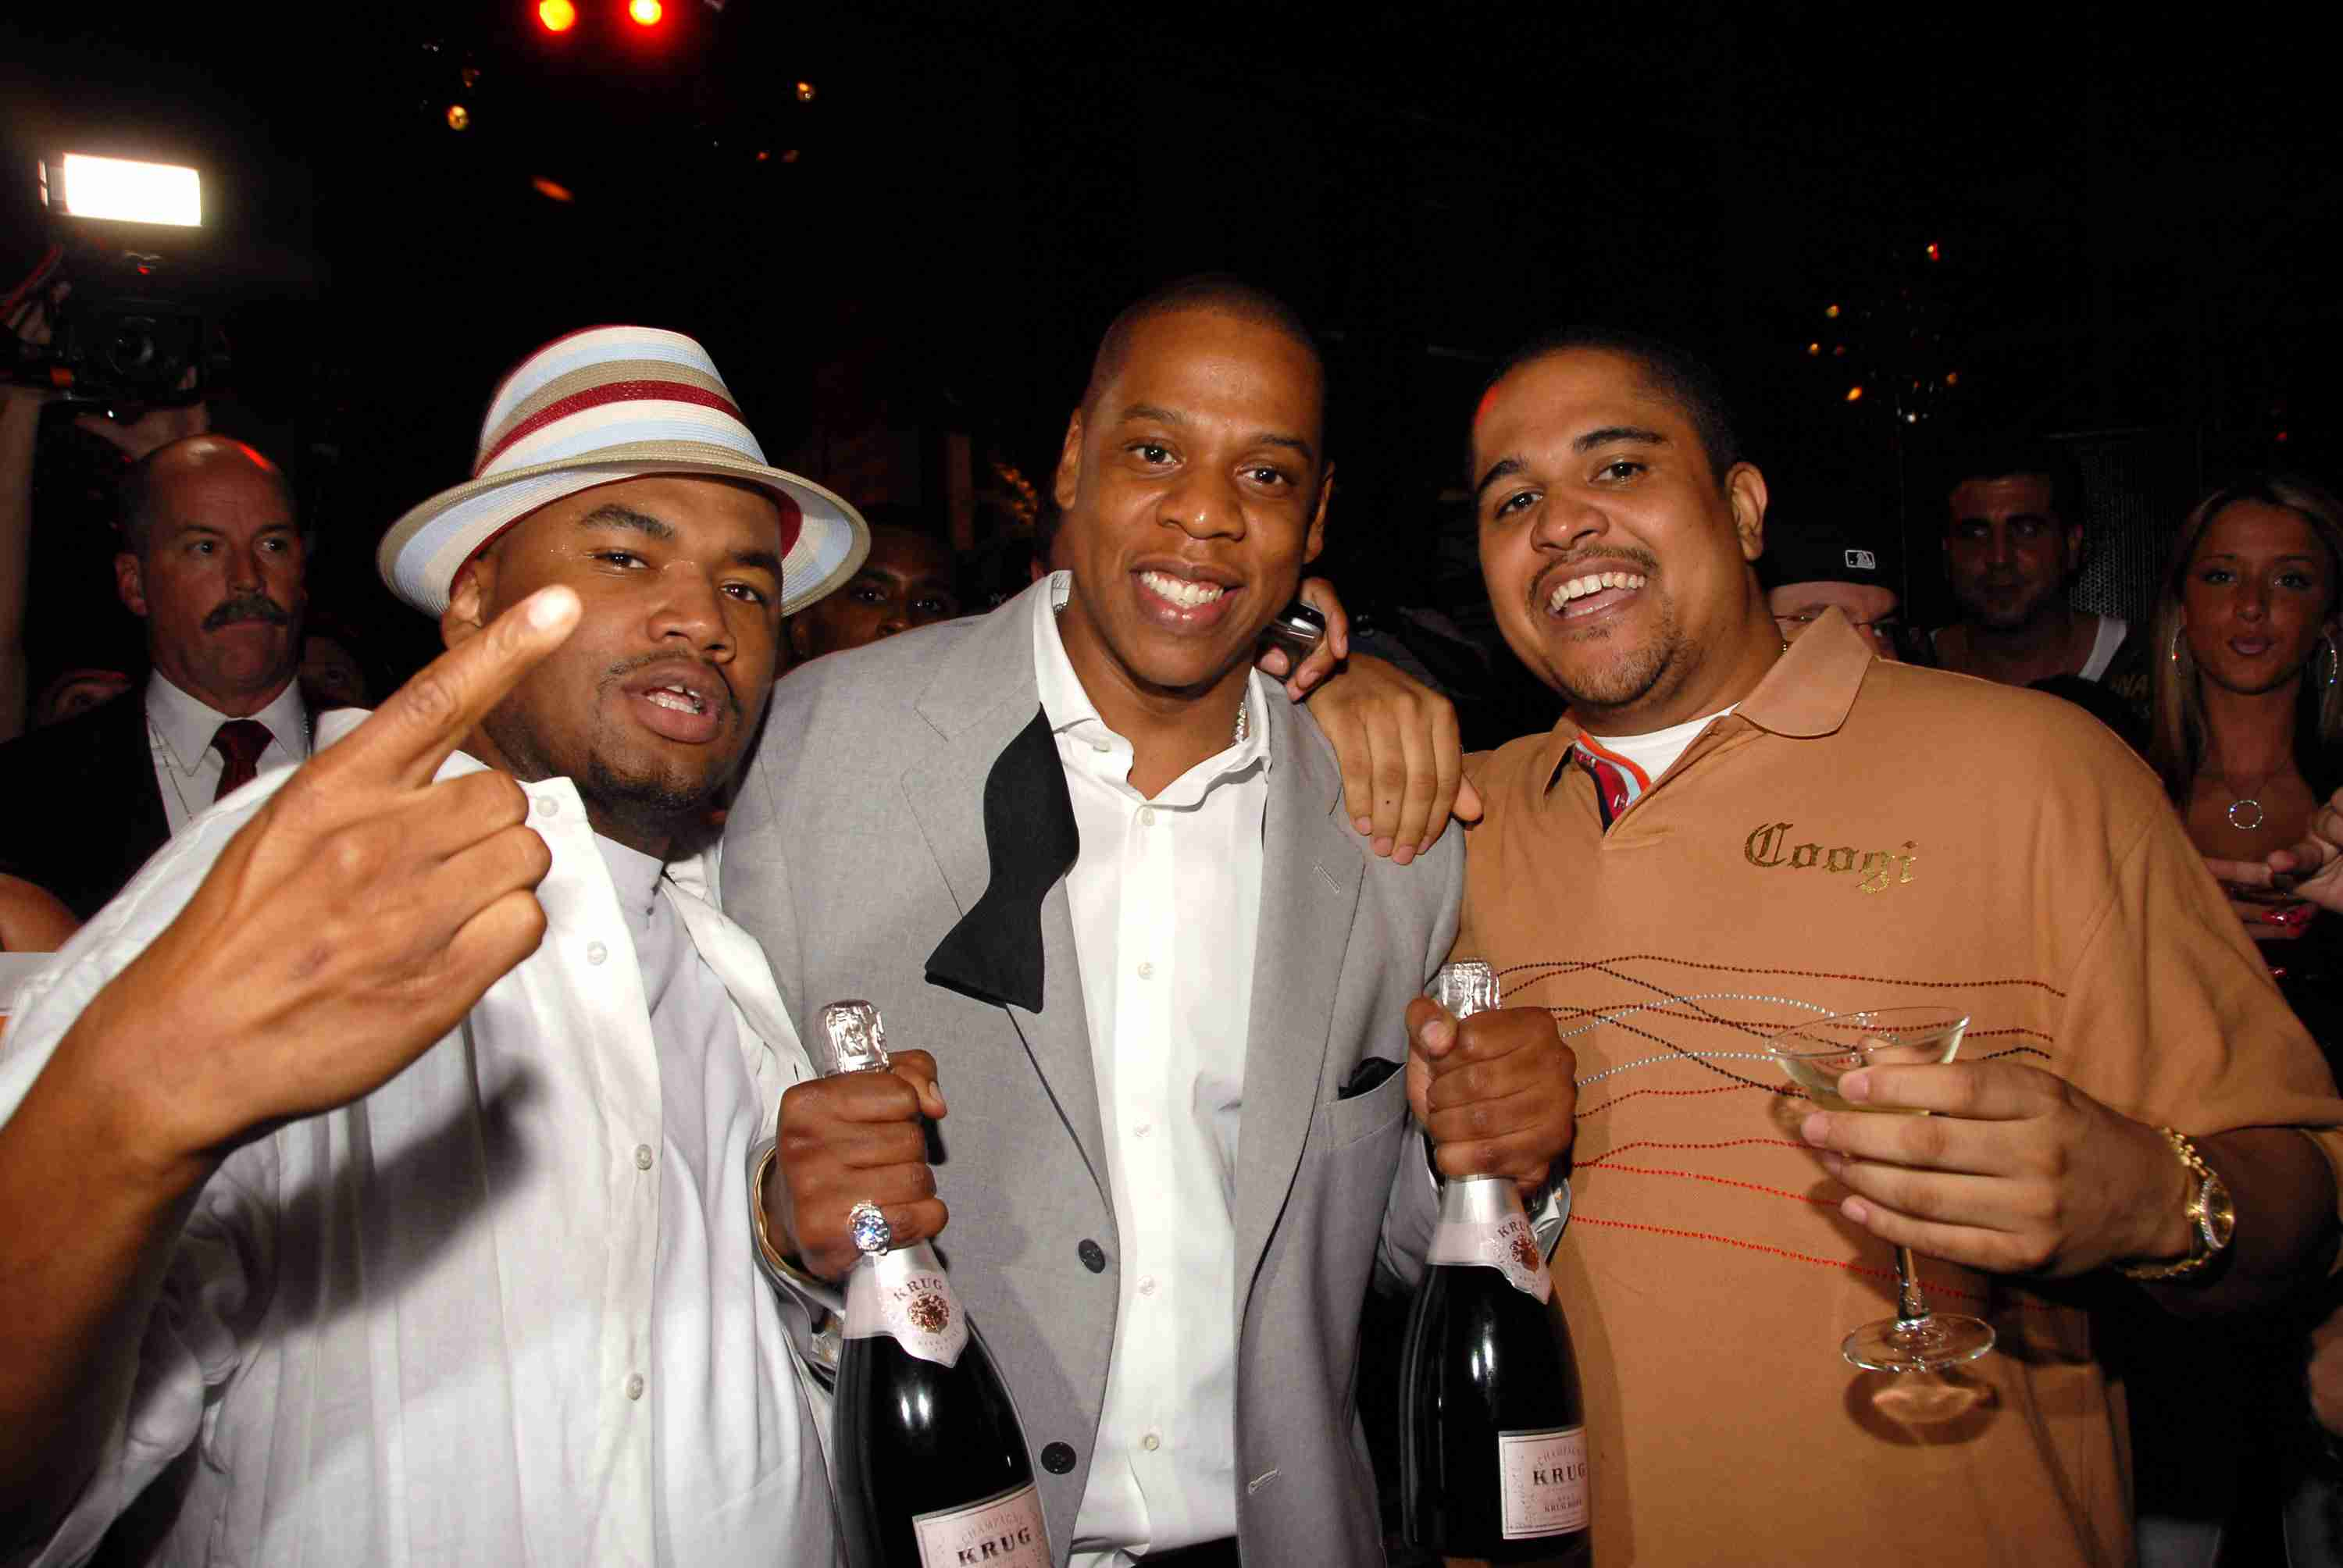 Shawn 'Jay-Z' Carter Celebrates the 10th Anniversary of 'Reasonable Doubt' - Inside